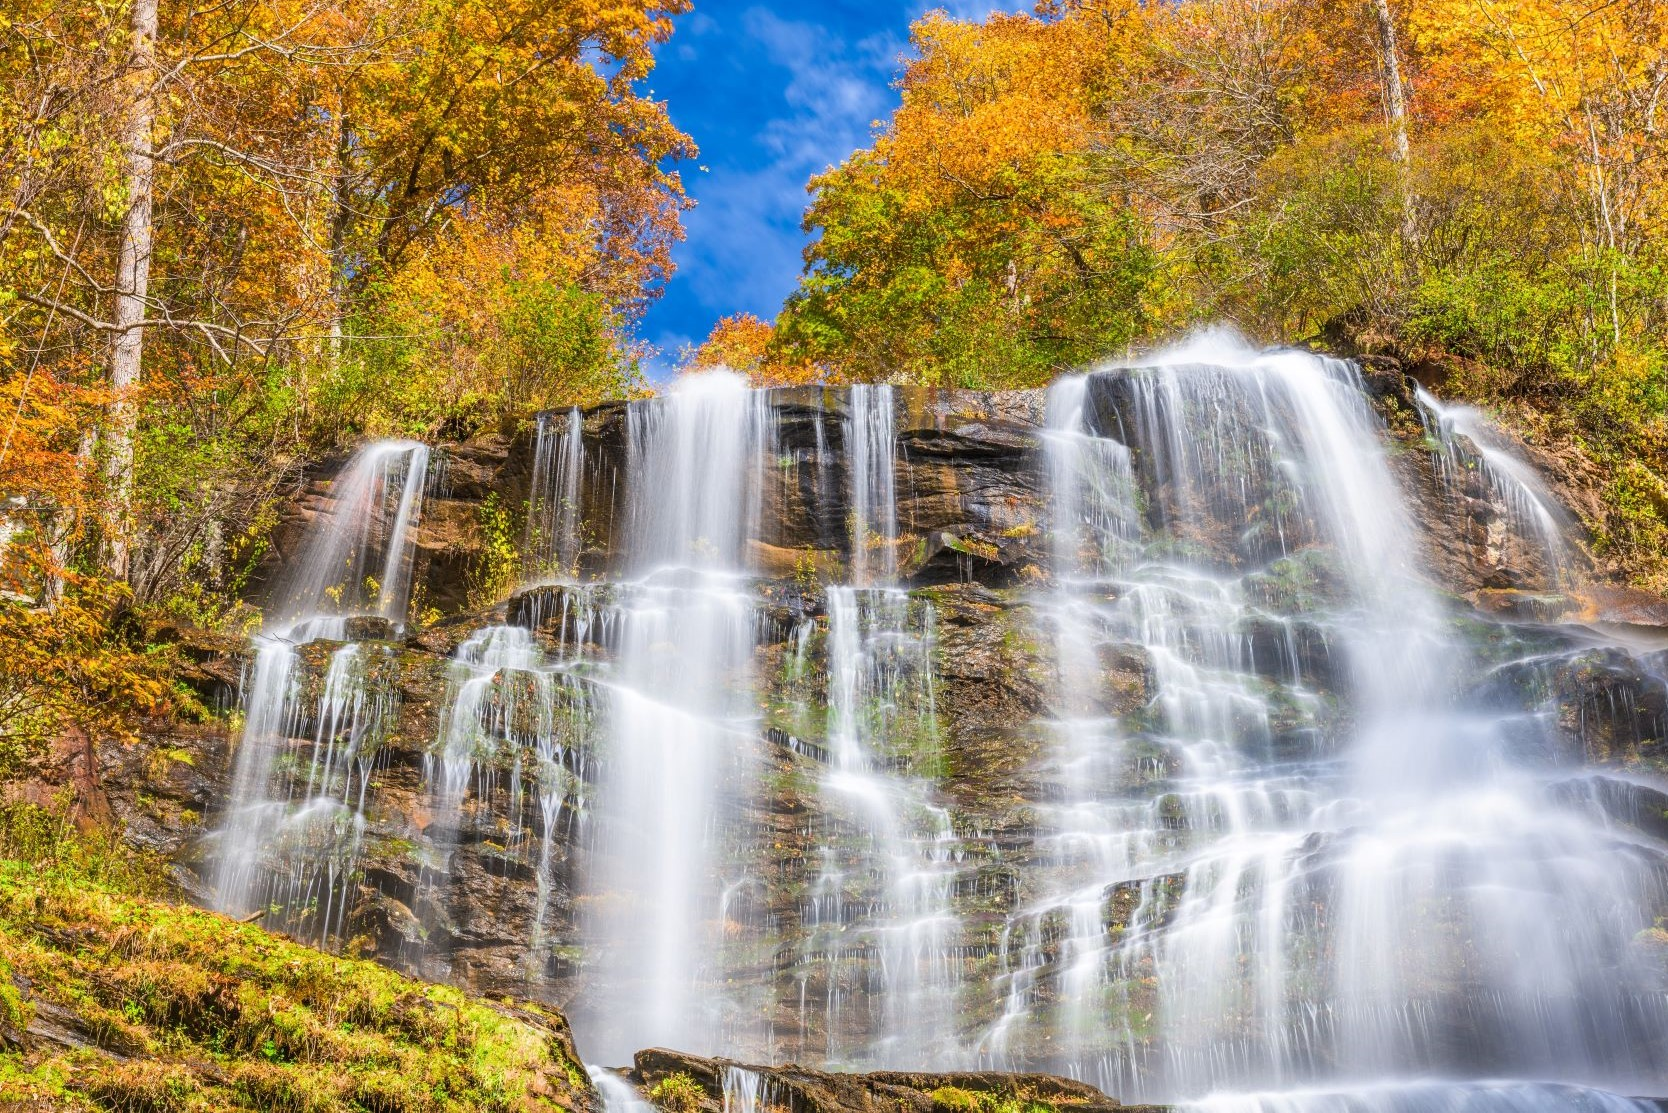 Photo of the stunning Amicalola Falls during Fall in Georgia.